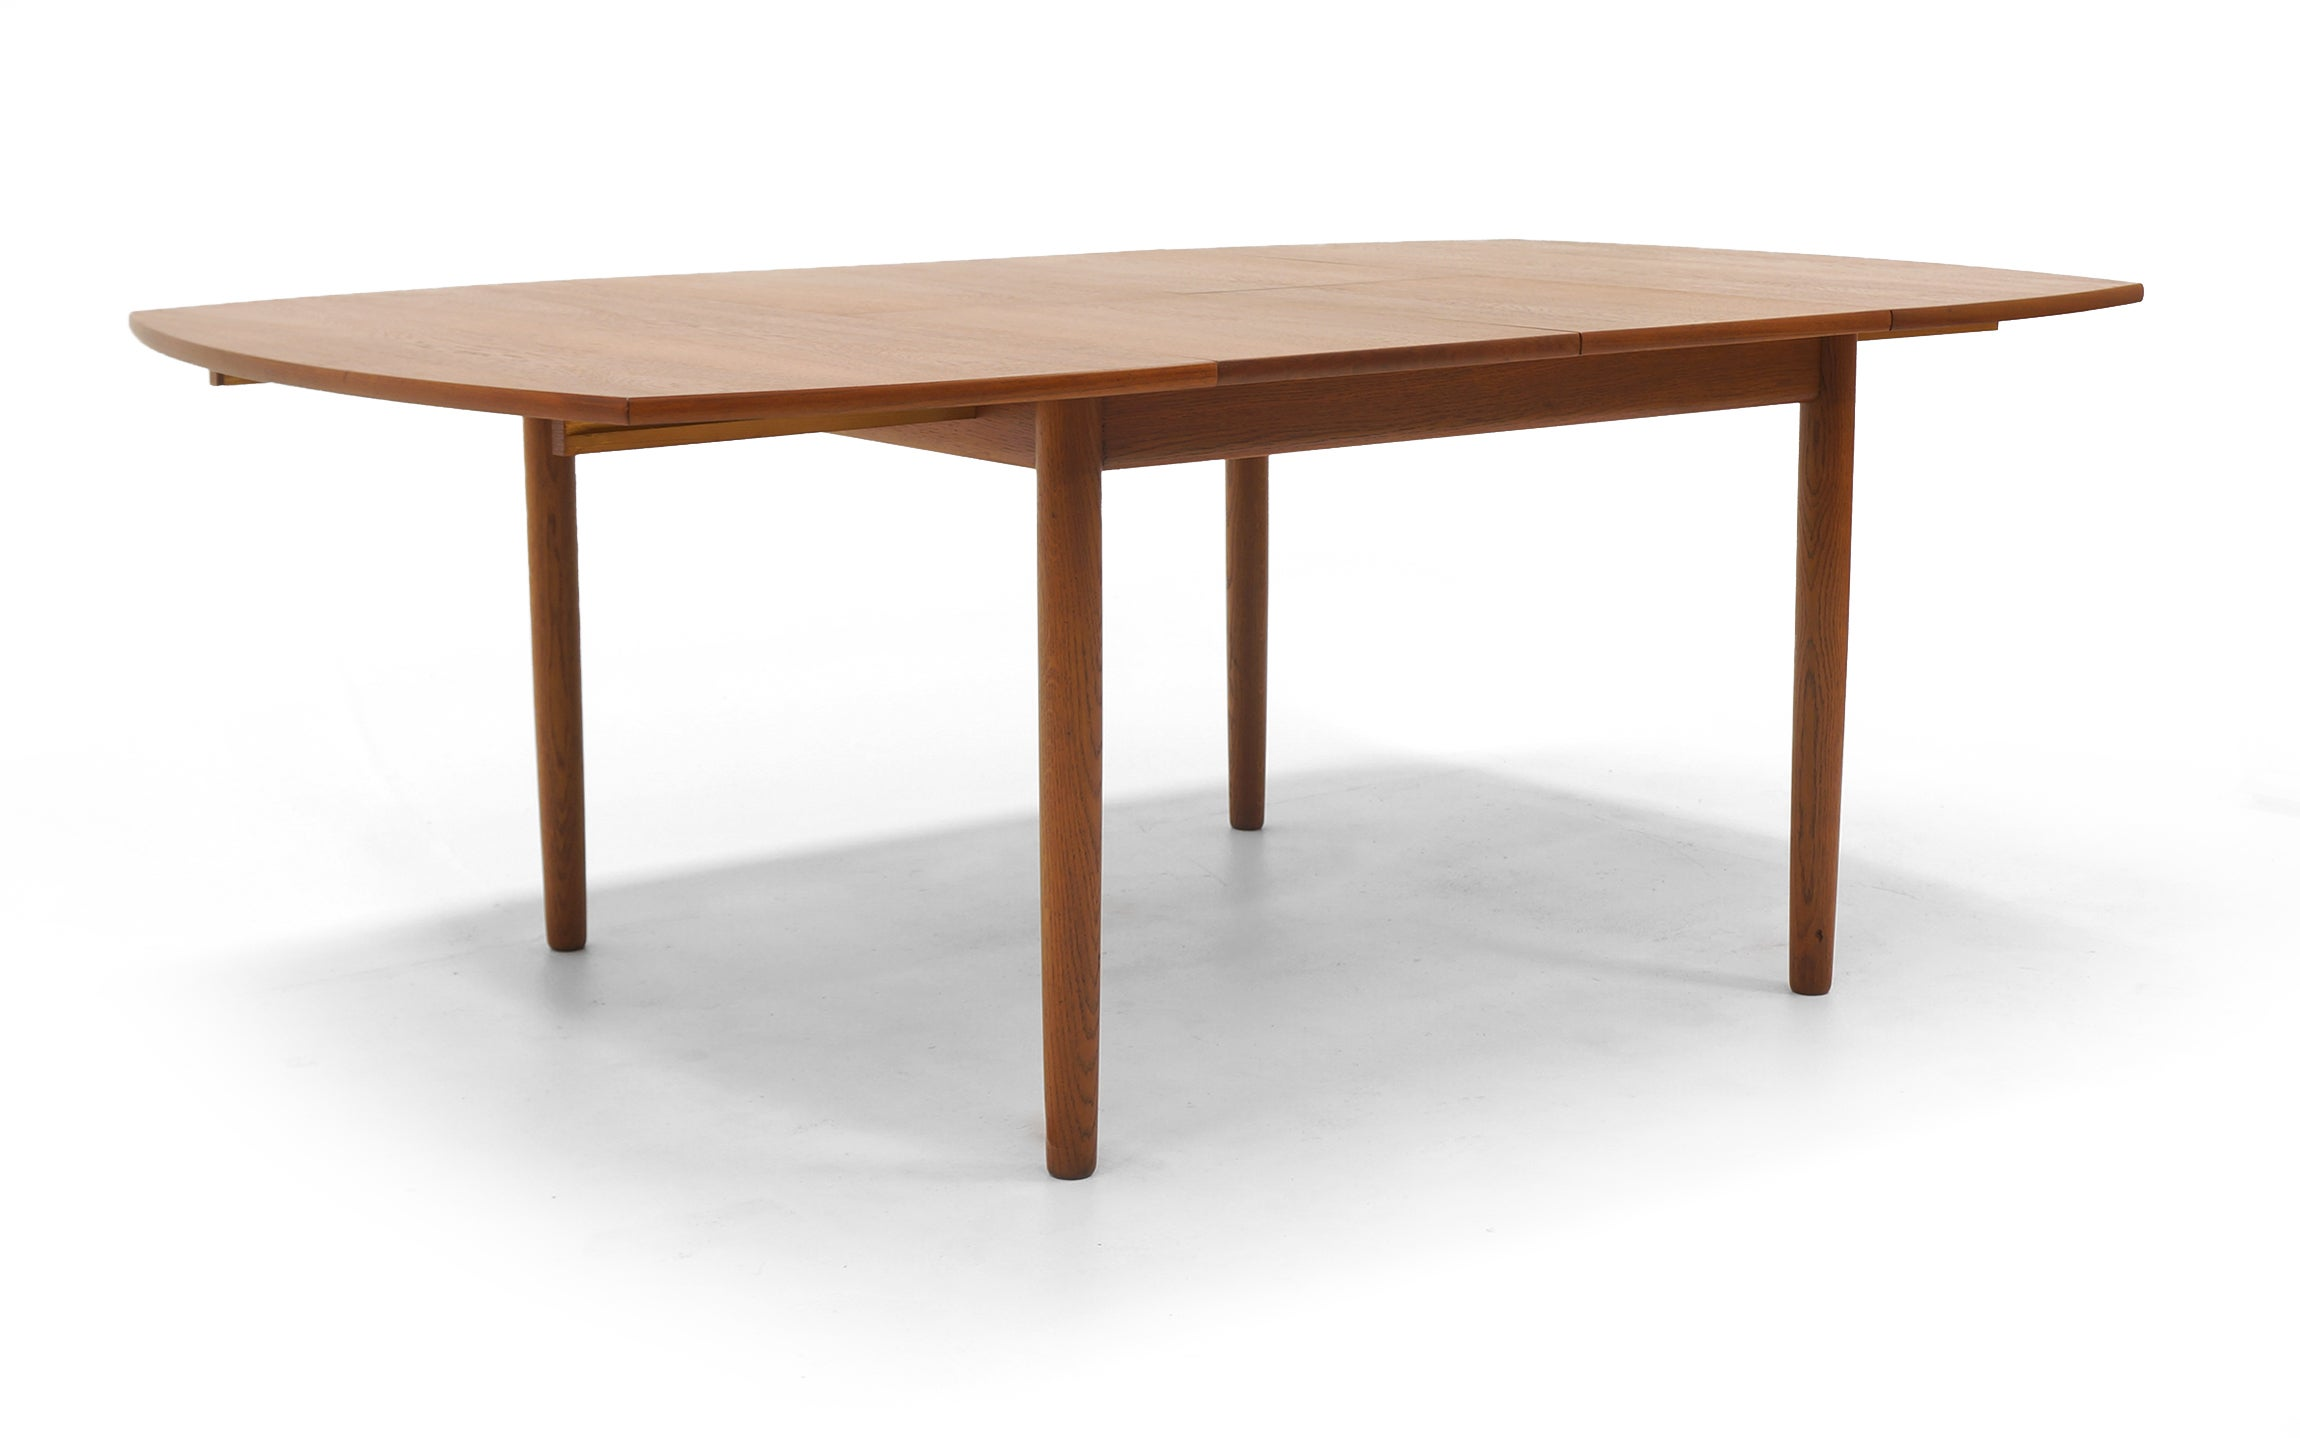 Square Expanding Danish Modern Teak Dining Table By Ejner Larsen